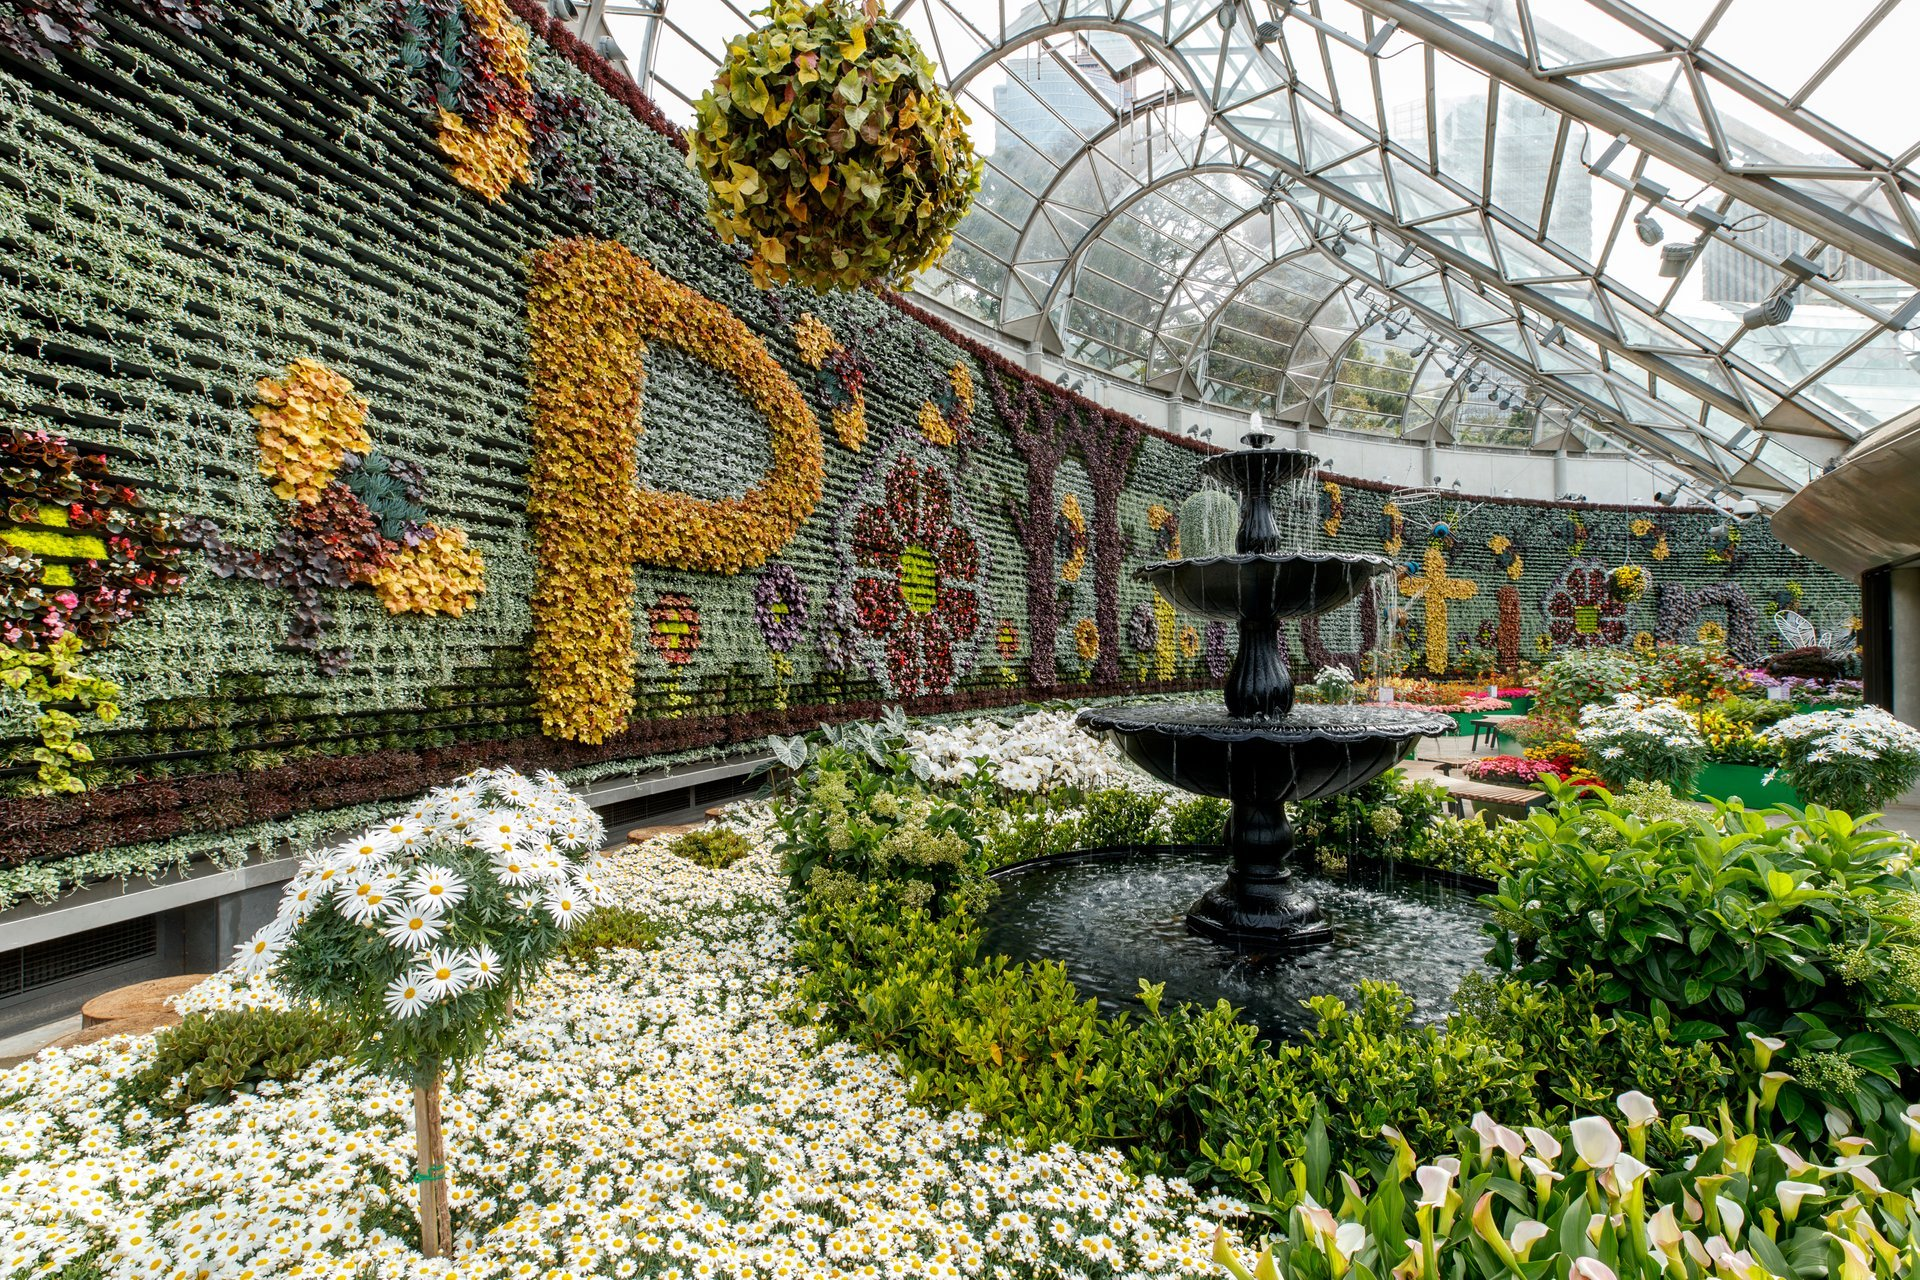 Pollination floral display at The Calyx 2020